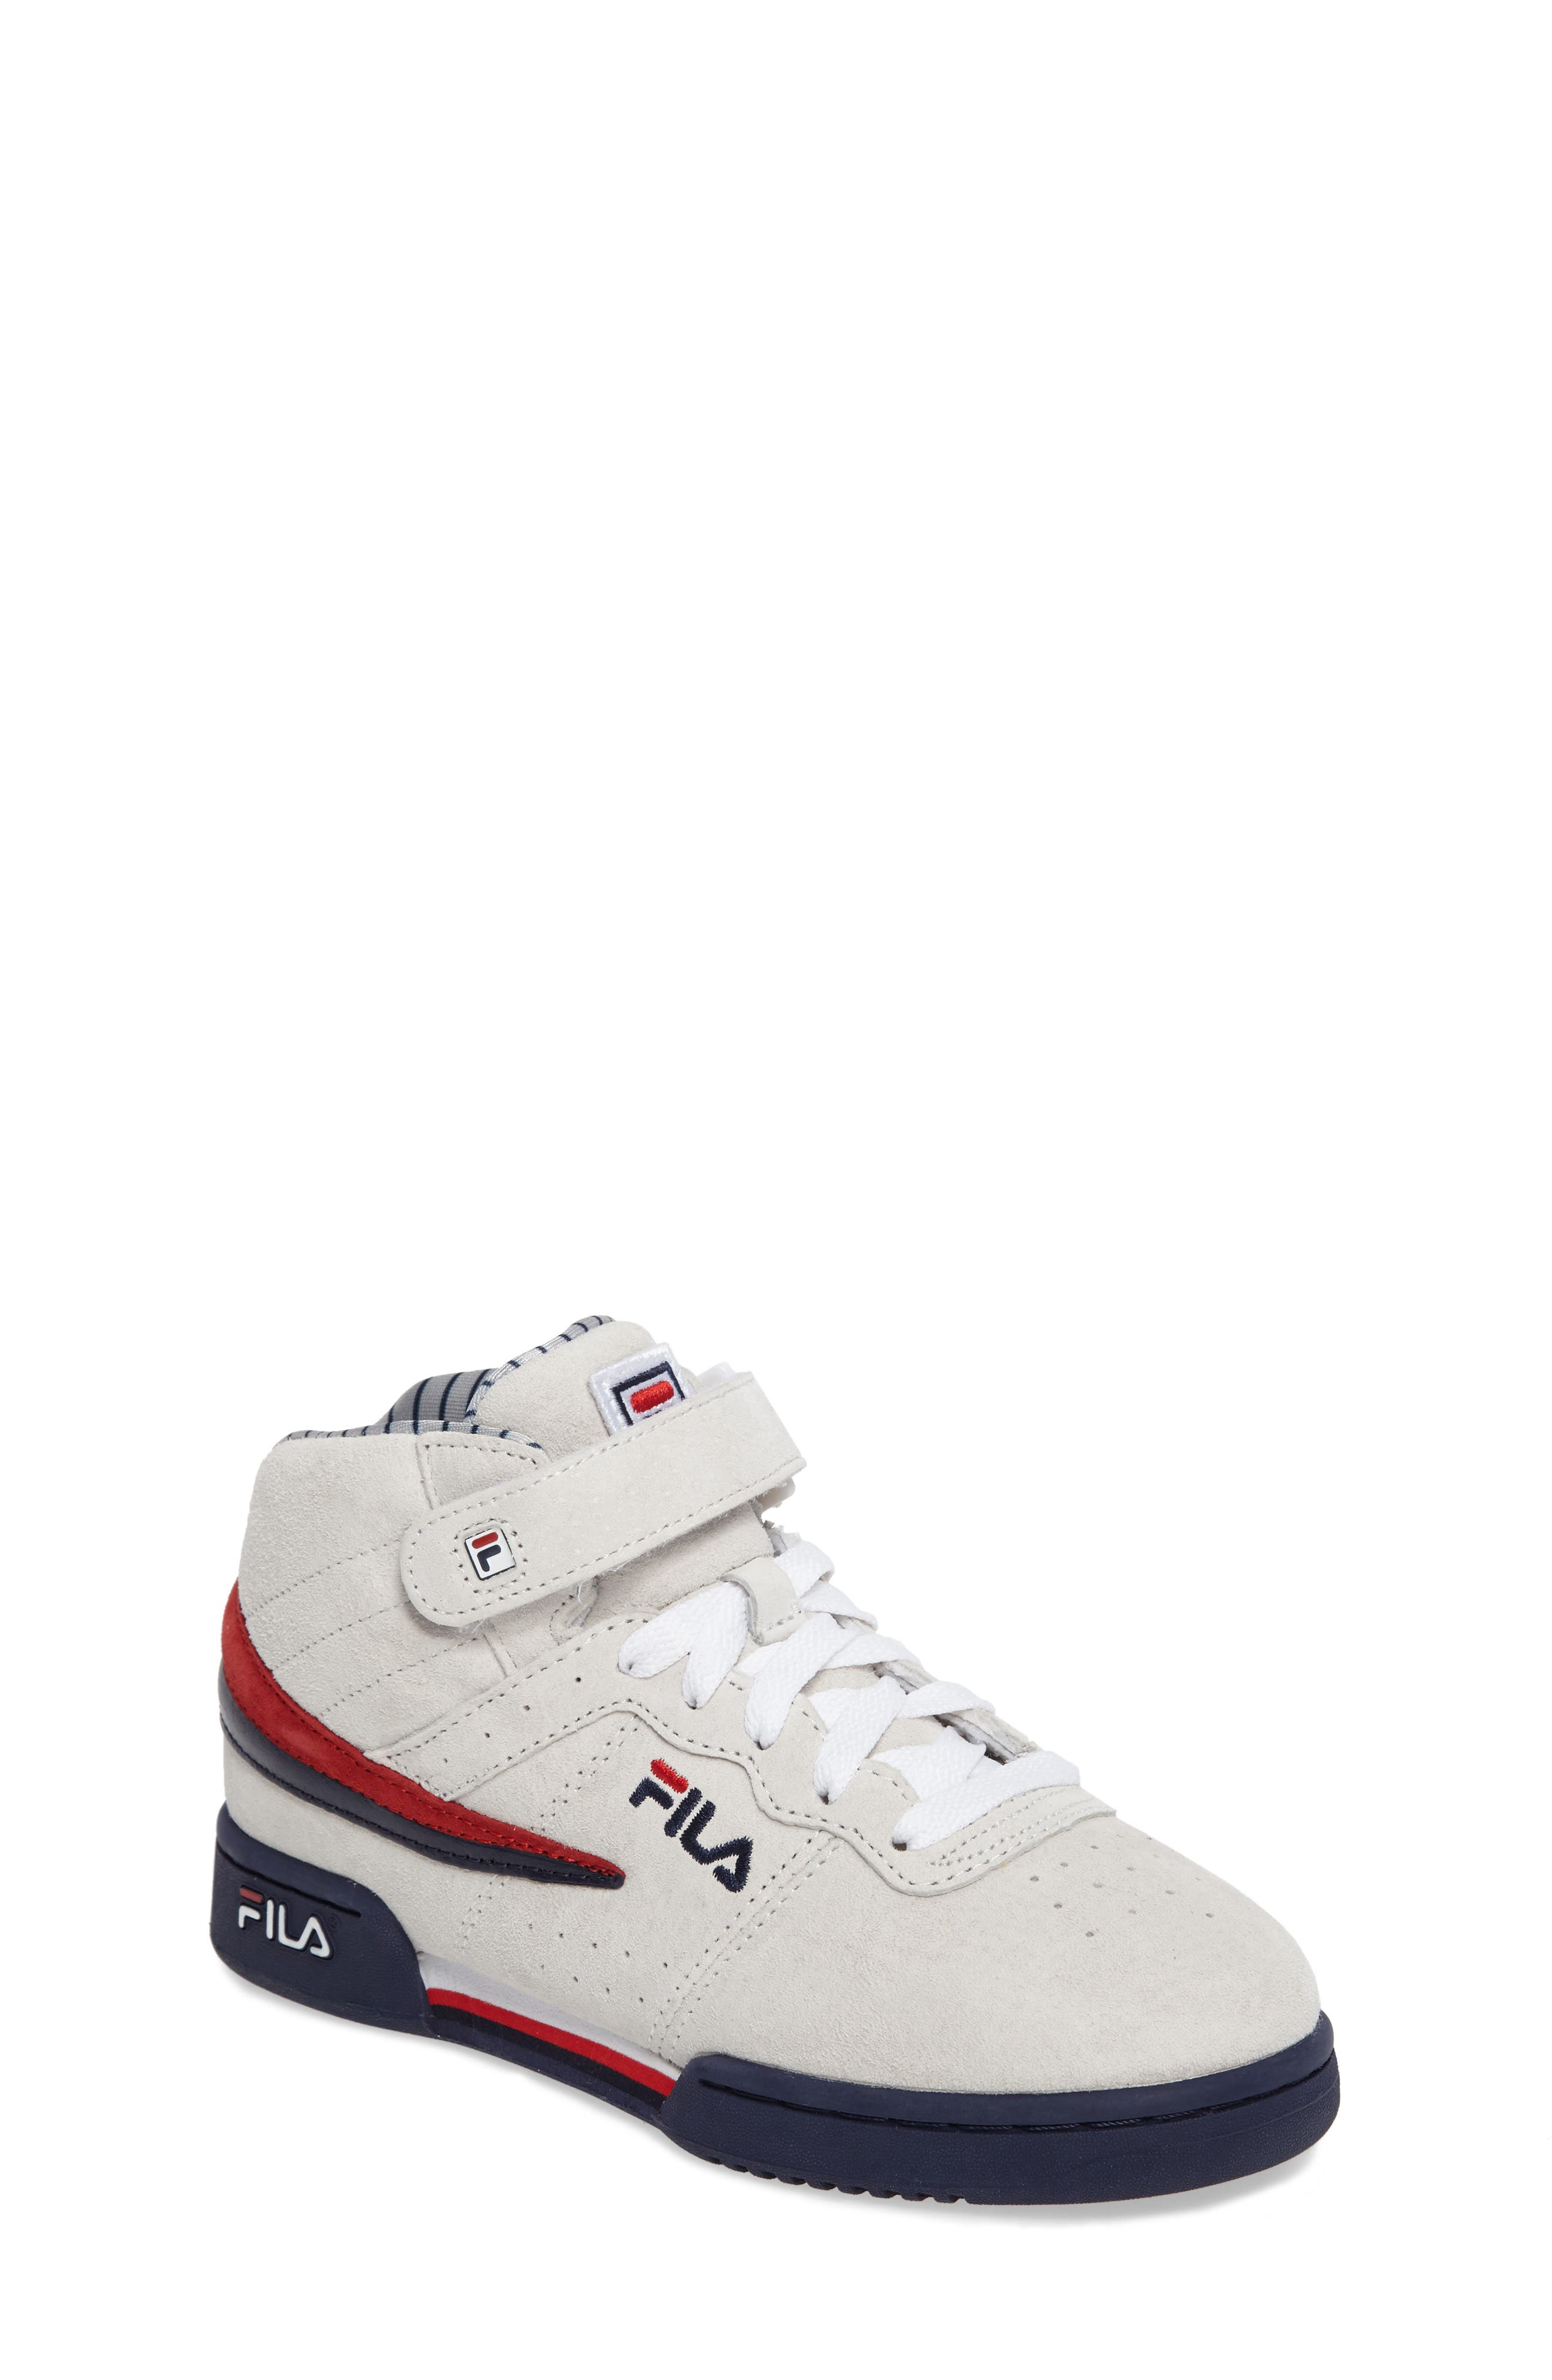 F-13 Mid Pinstripe Sneaker,                             Main thumbnail 1, color,                             150